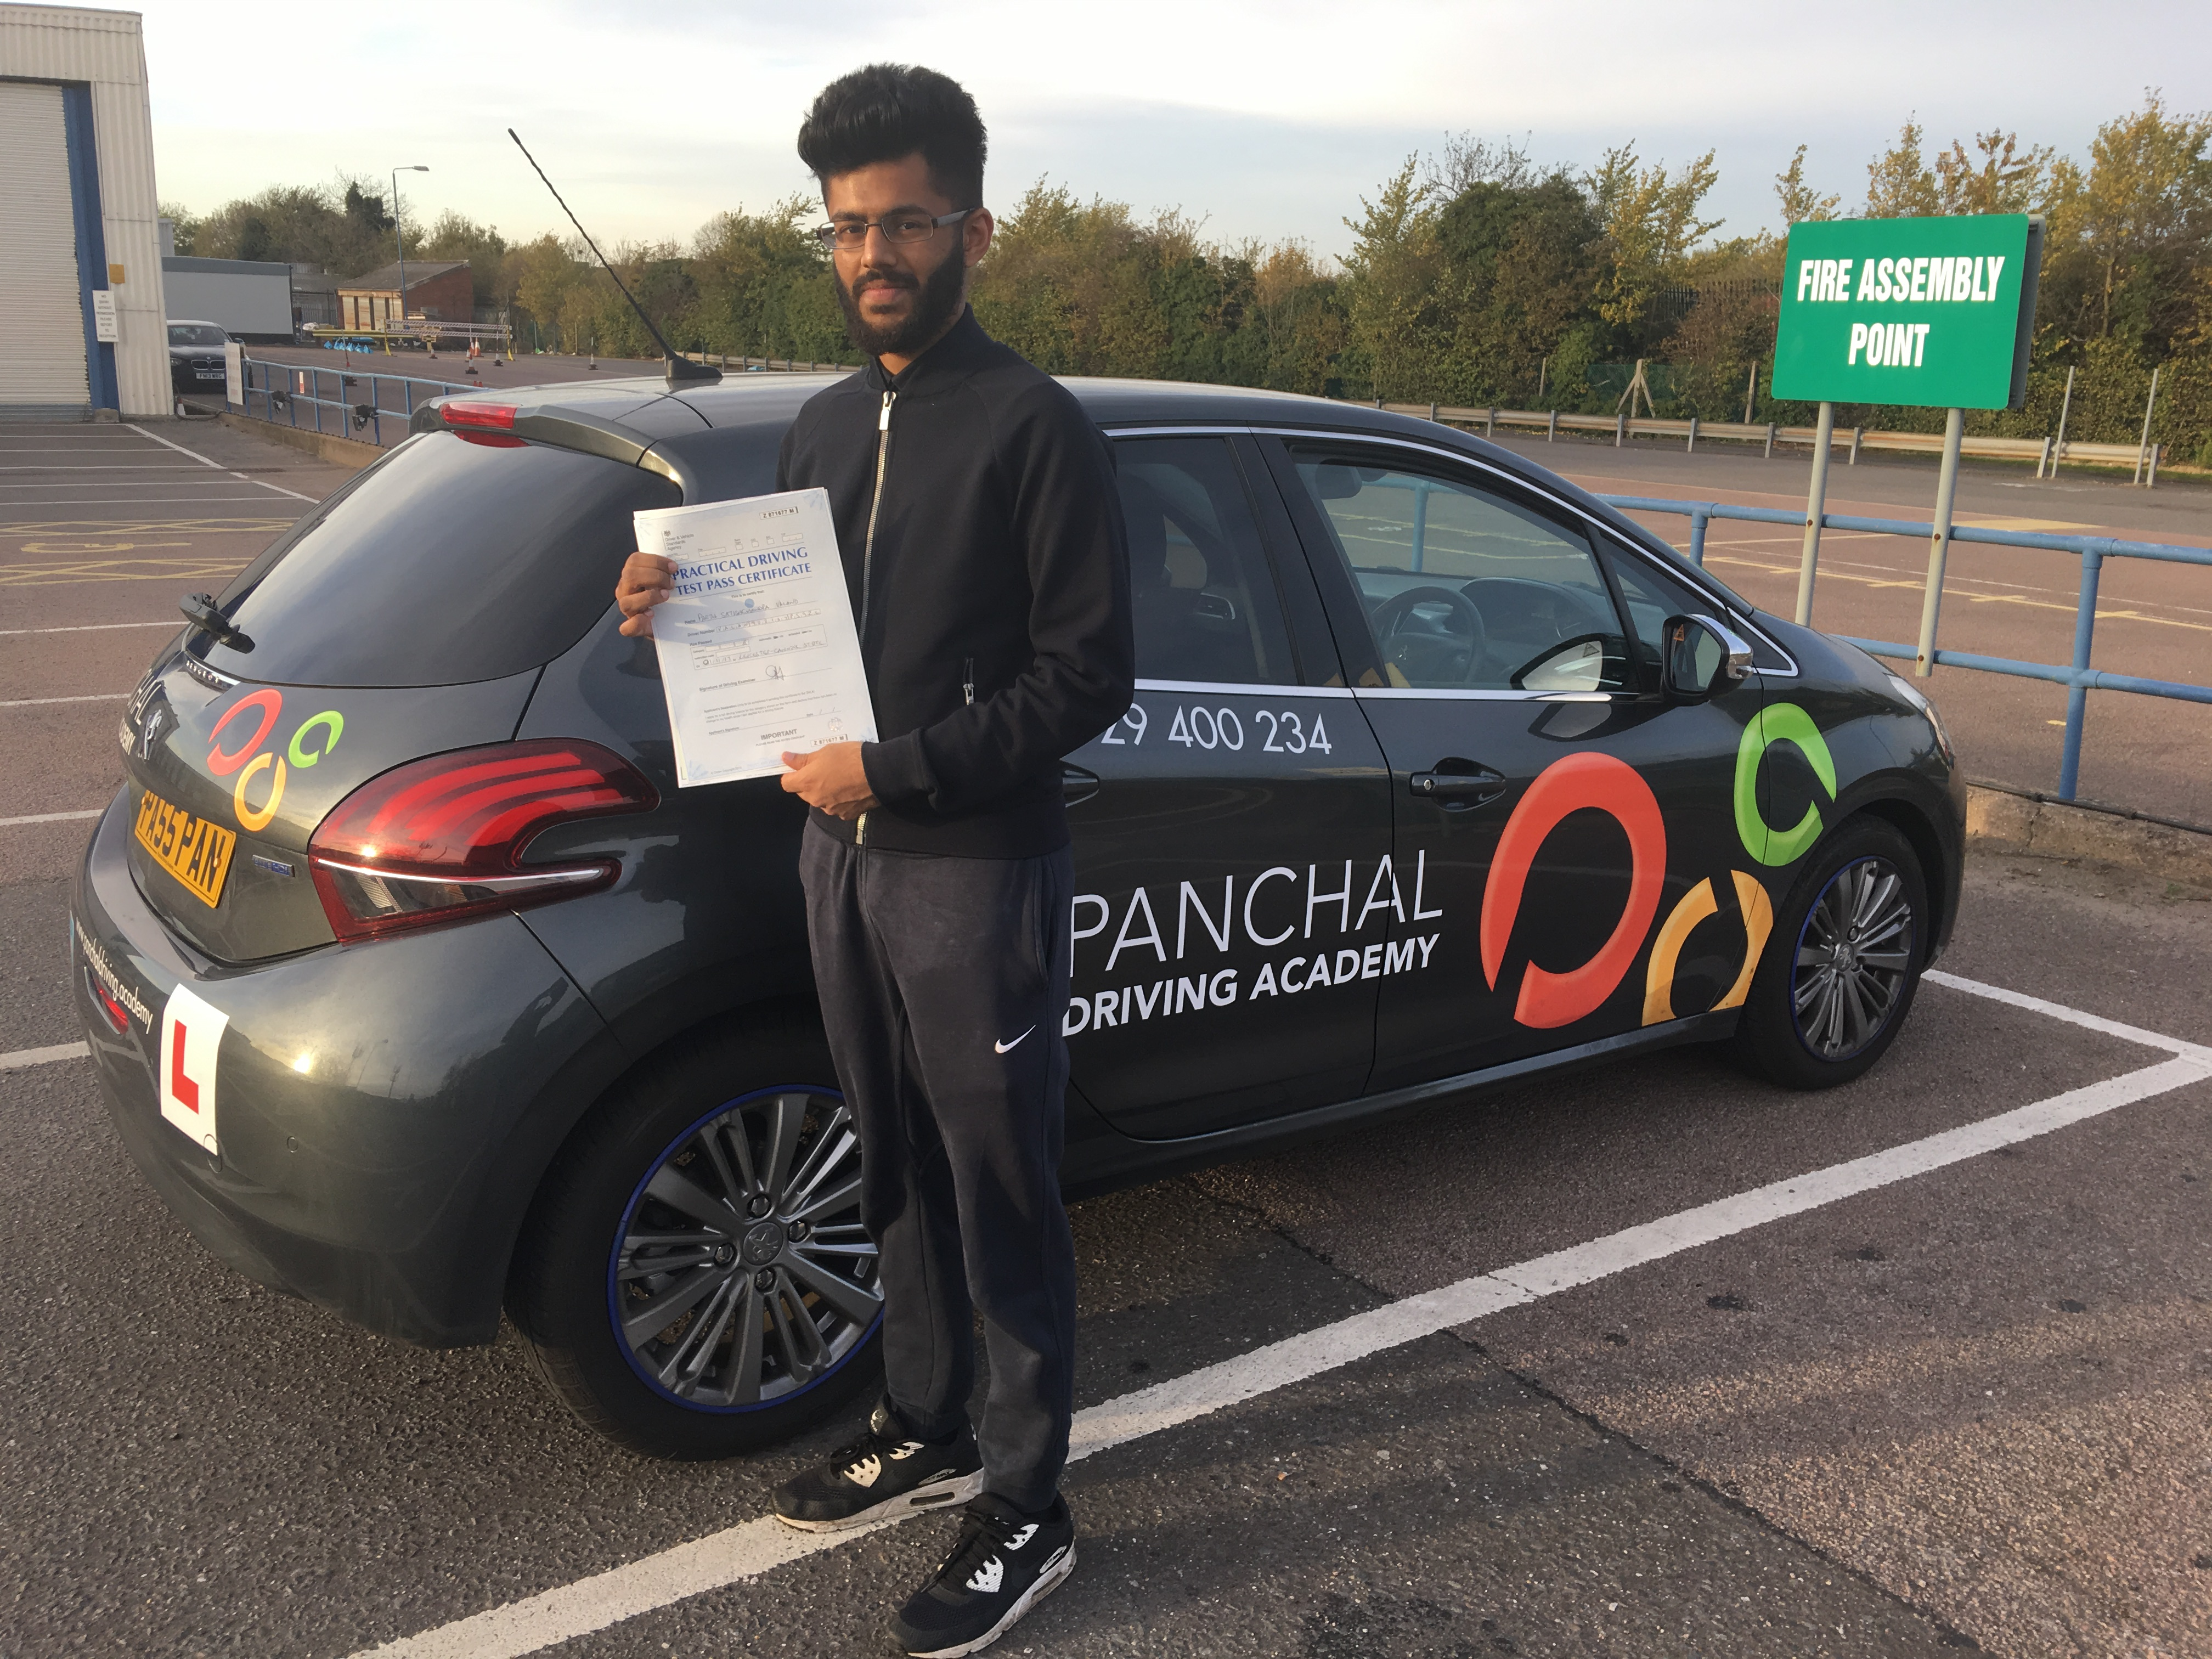 driving lessons leicester - Panchal Driving Academy - Parth Valand